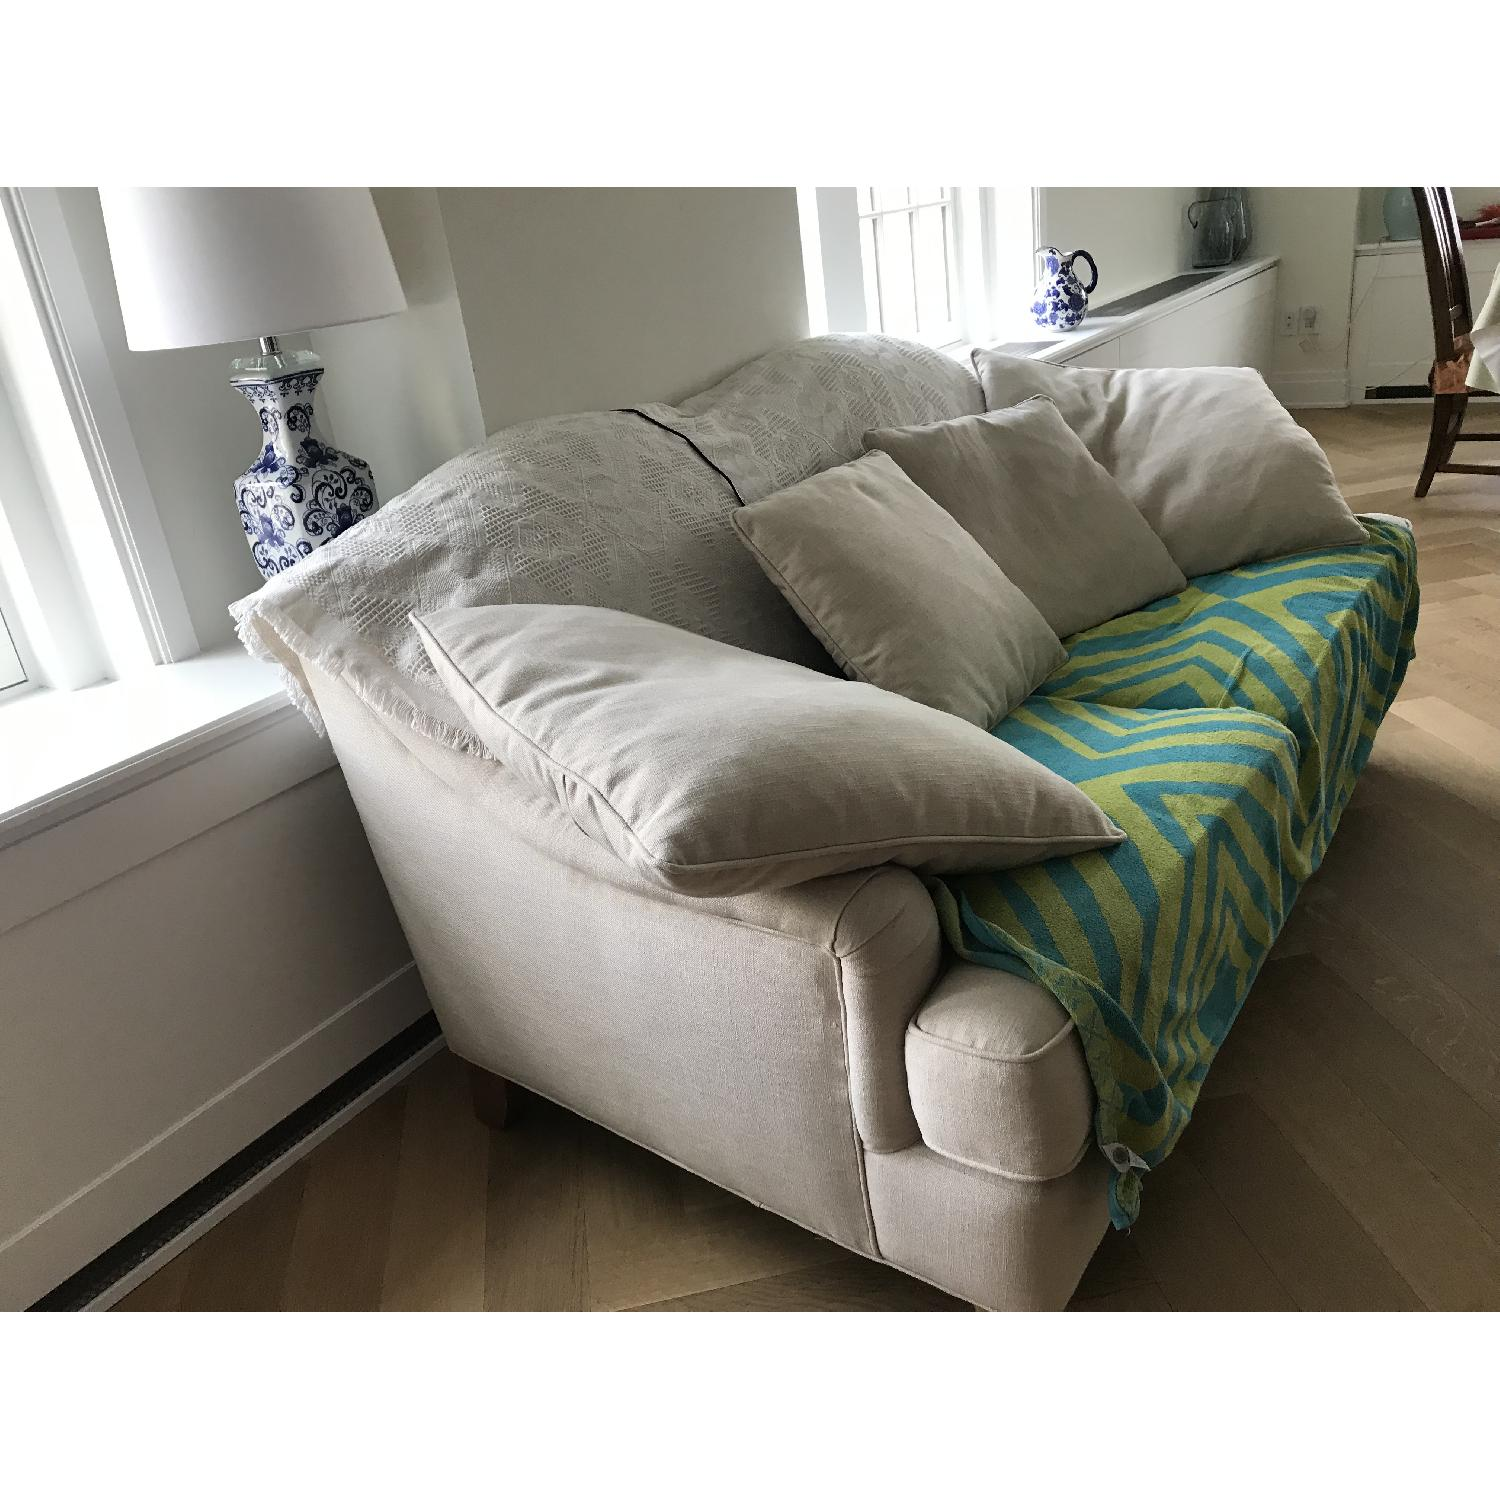 Magnolia Home by Joanna Gaines Loveseat-5